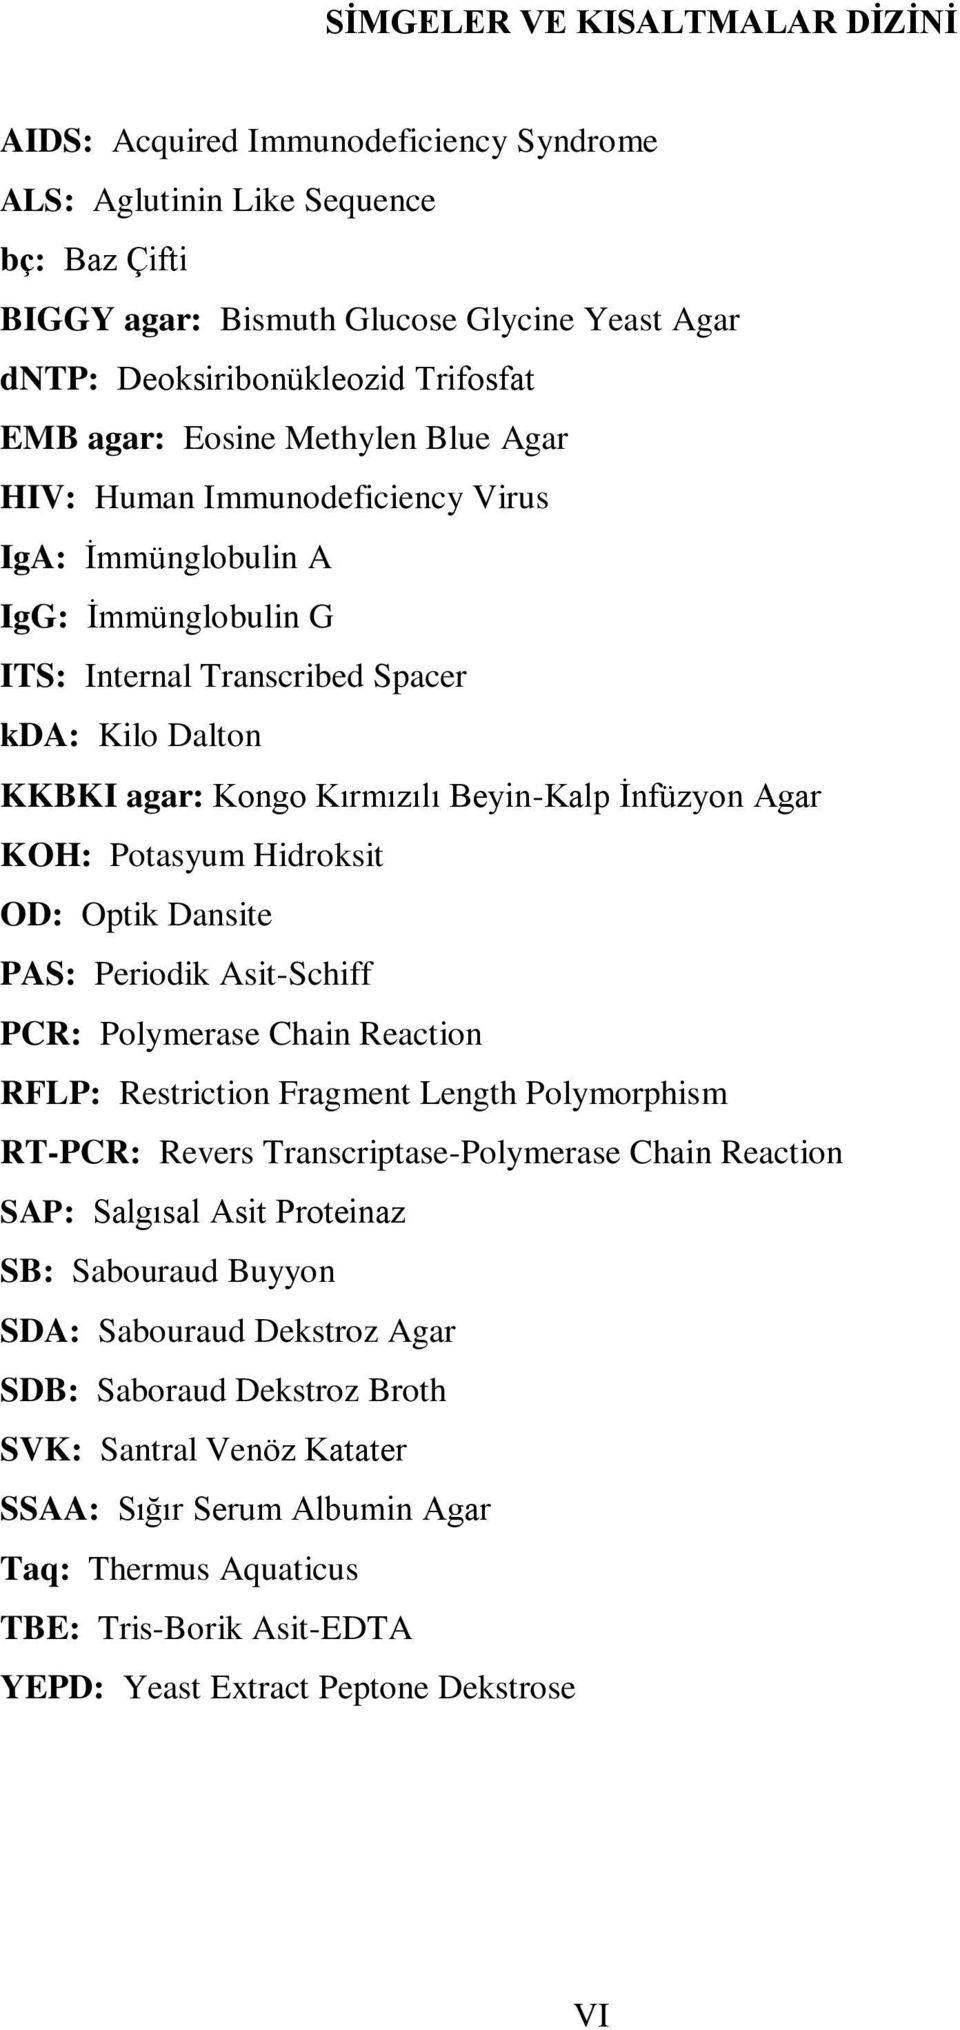 Beyin-Kalp Ġnfüzyon Agar KOH: Potasyum Hidroksit OD: Optik Dansite PAS: Periodik Asit-Schiff PCR: Polymerase Chain Reaction RFLP: Restriction Fragment Length Polymorphism RT-PCR: Revers